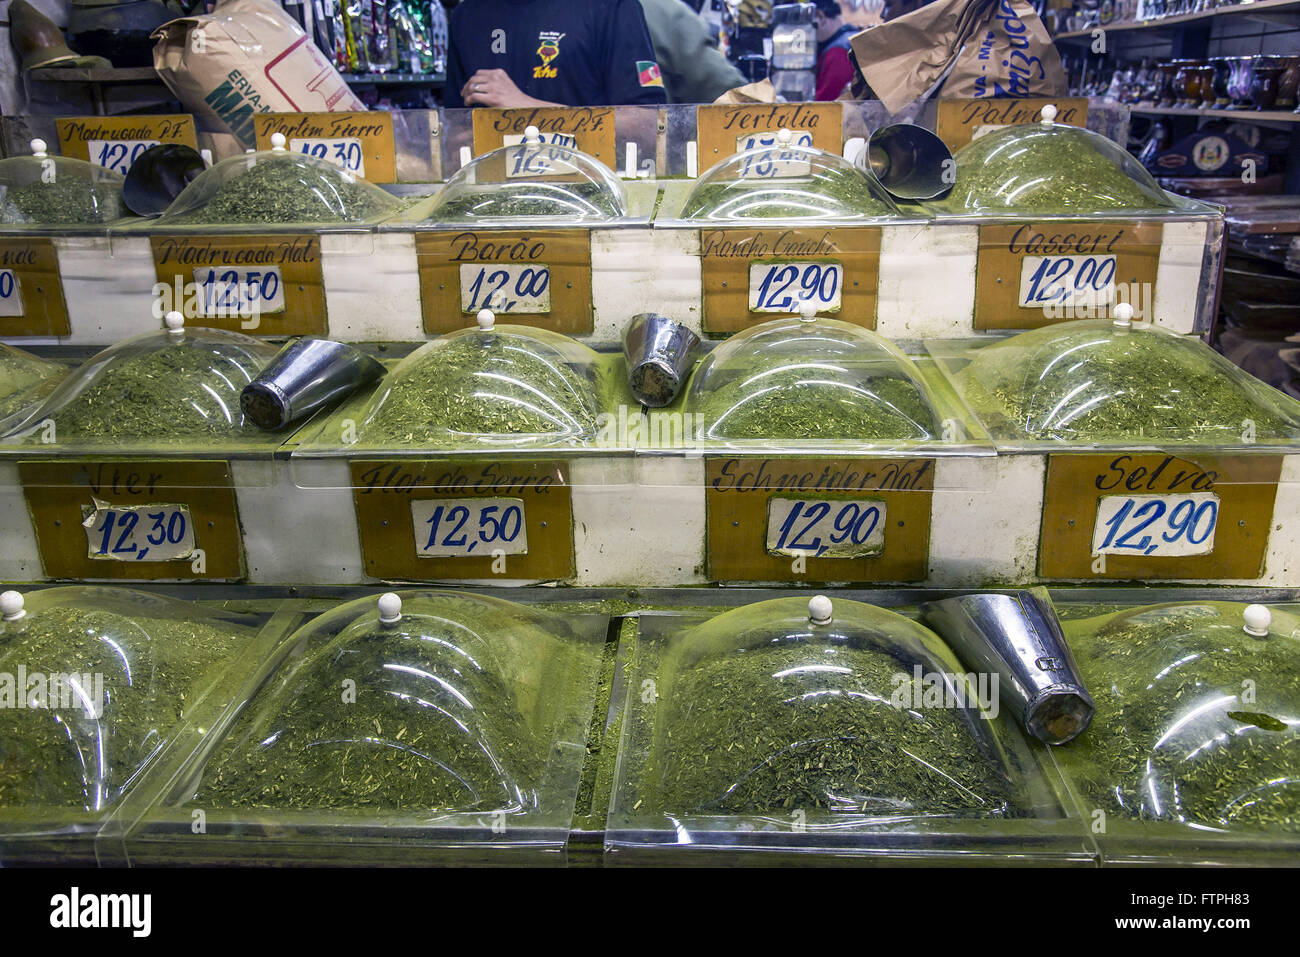 Mate banking bulk chimarrao for sale in Central Public Market - Stock Image